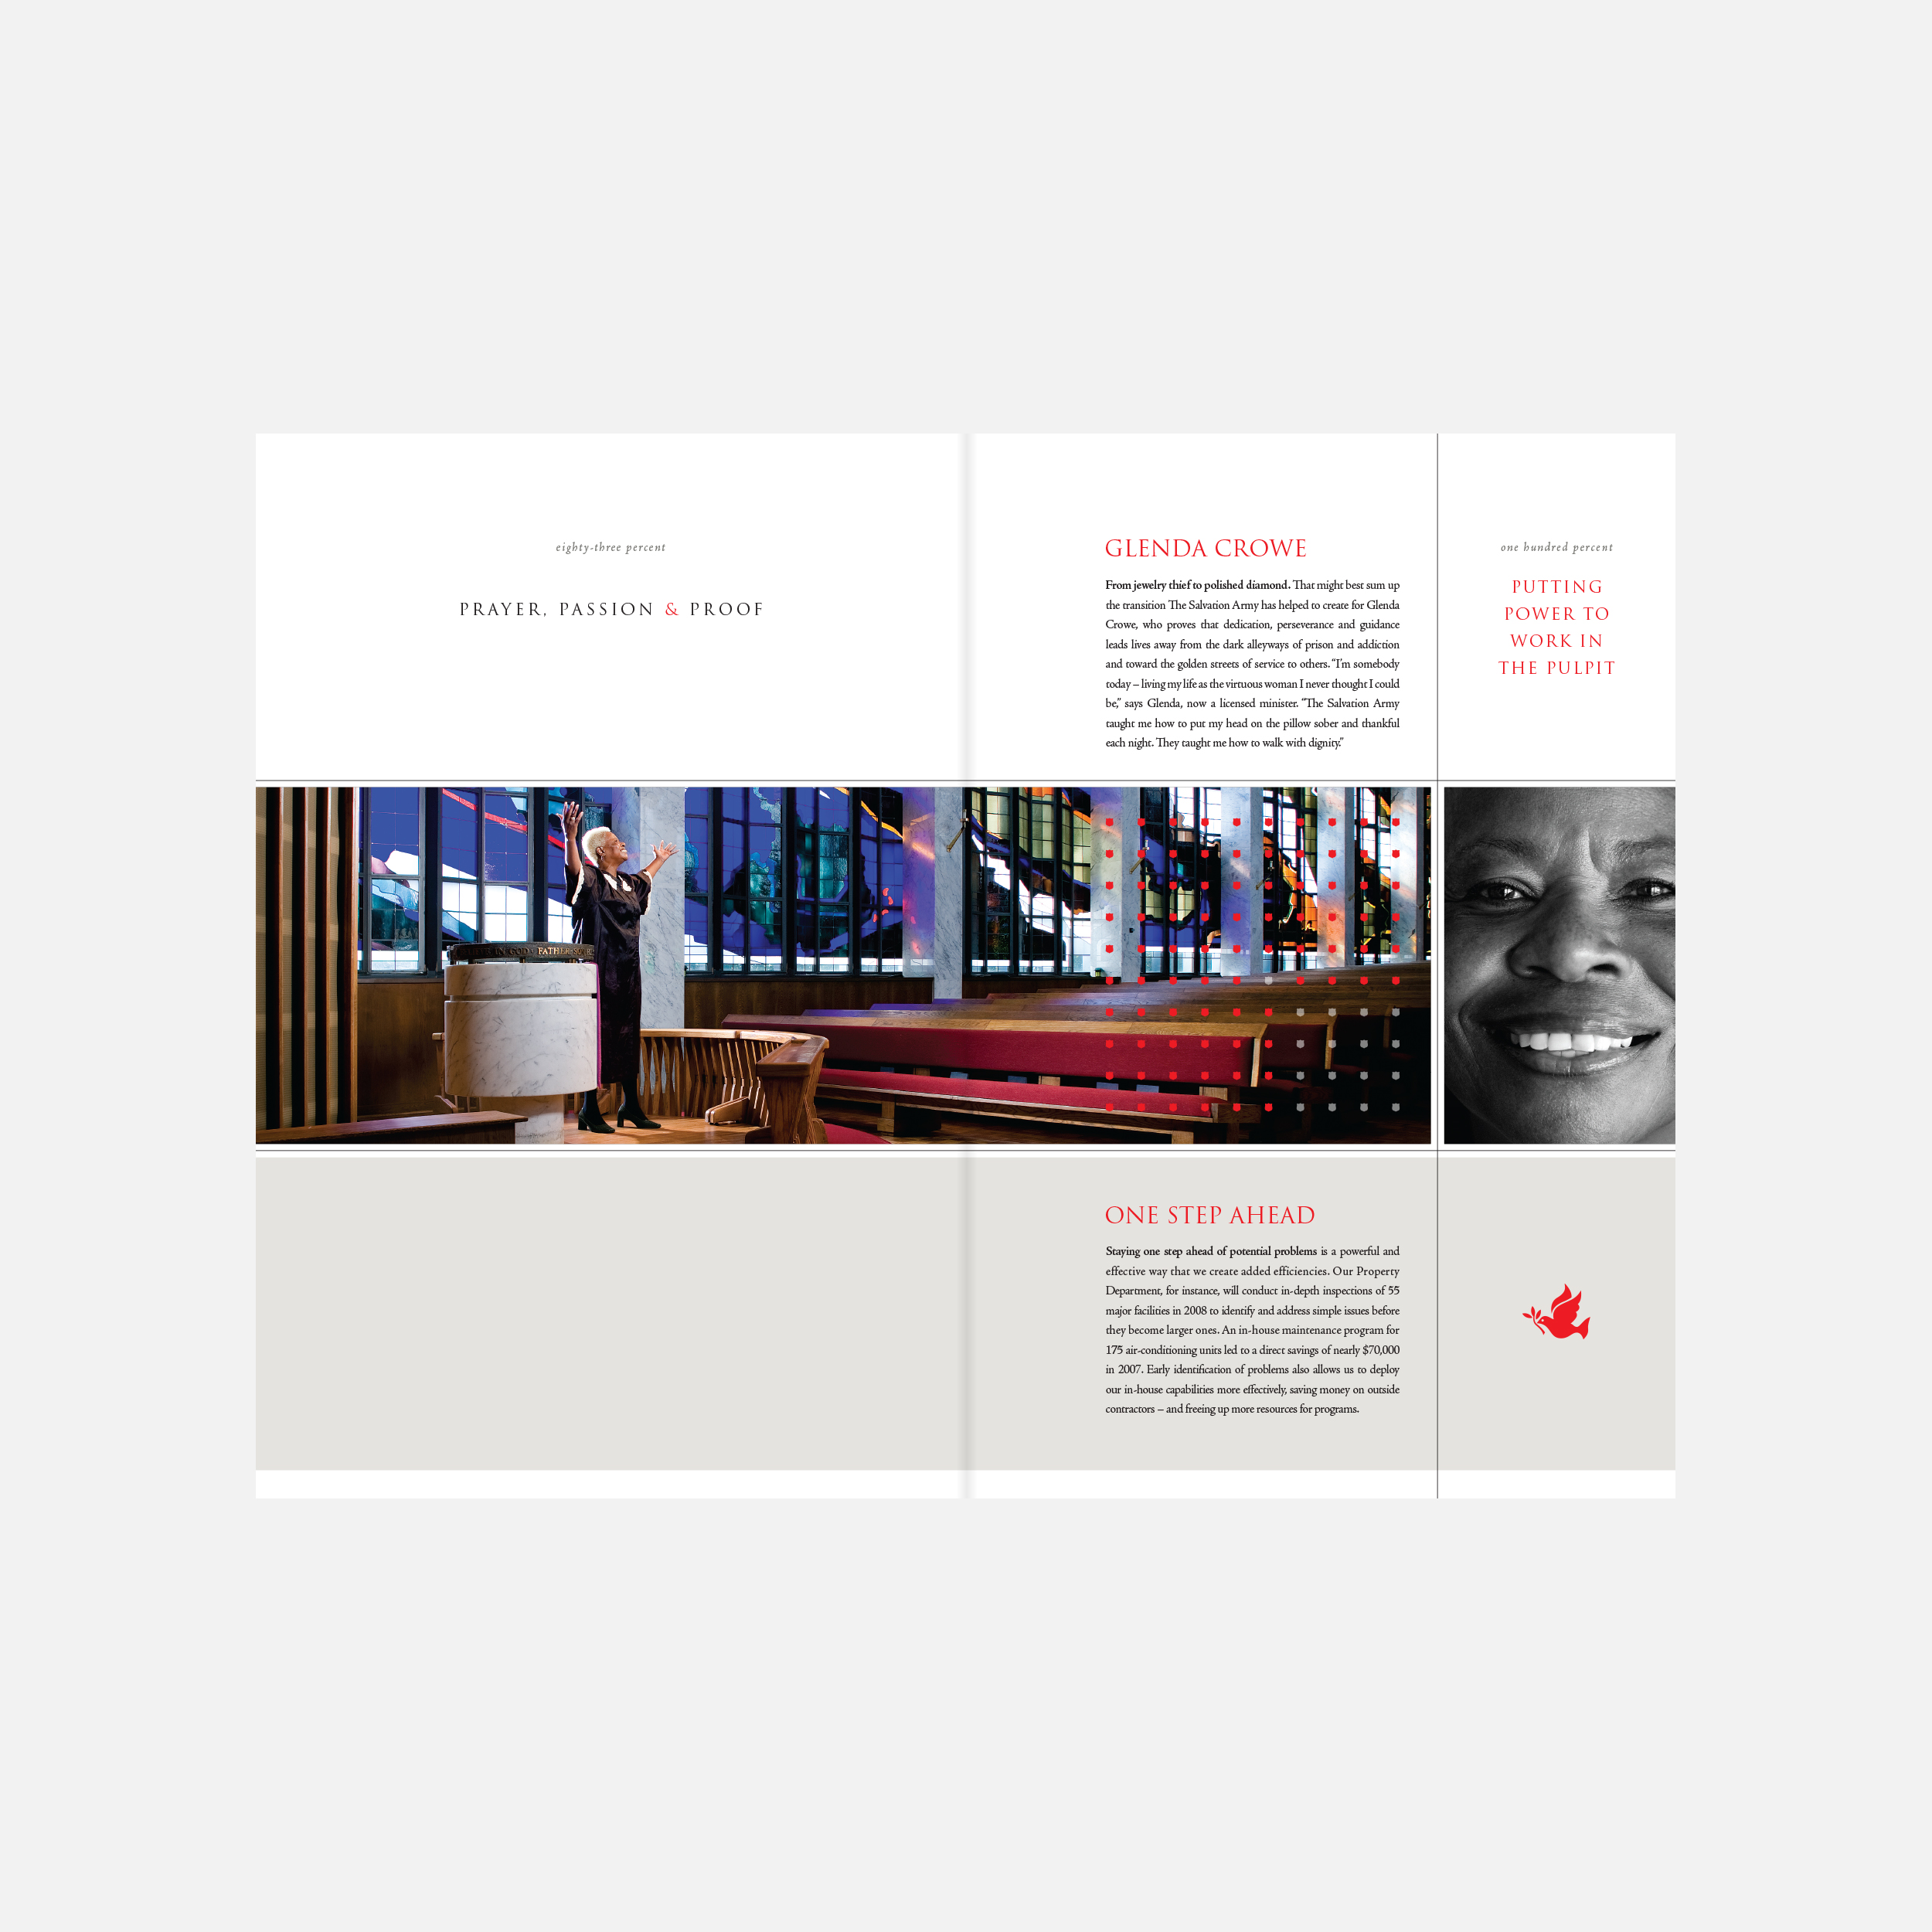 ND-website-graphics-2500-x-2500-Salvation-Army-Church-9.2018.jpg